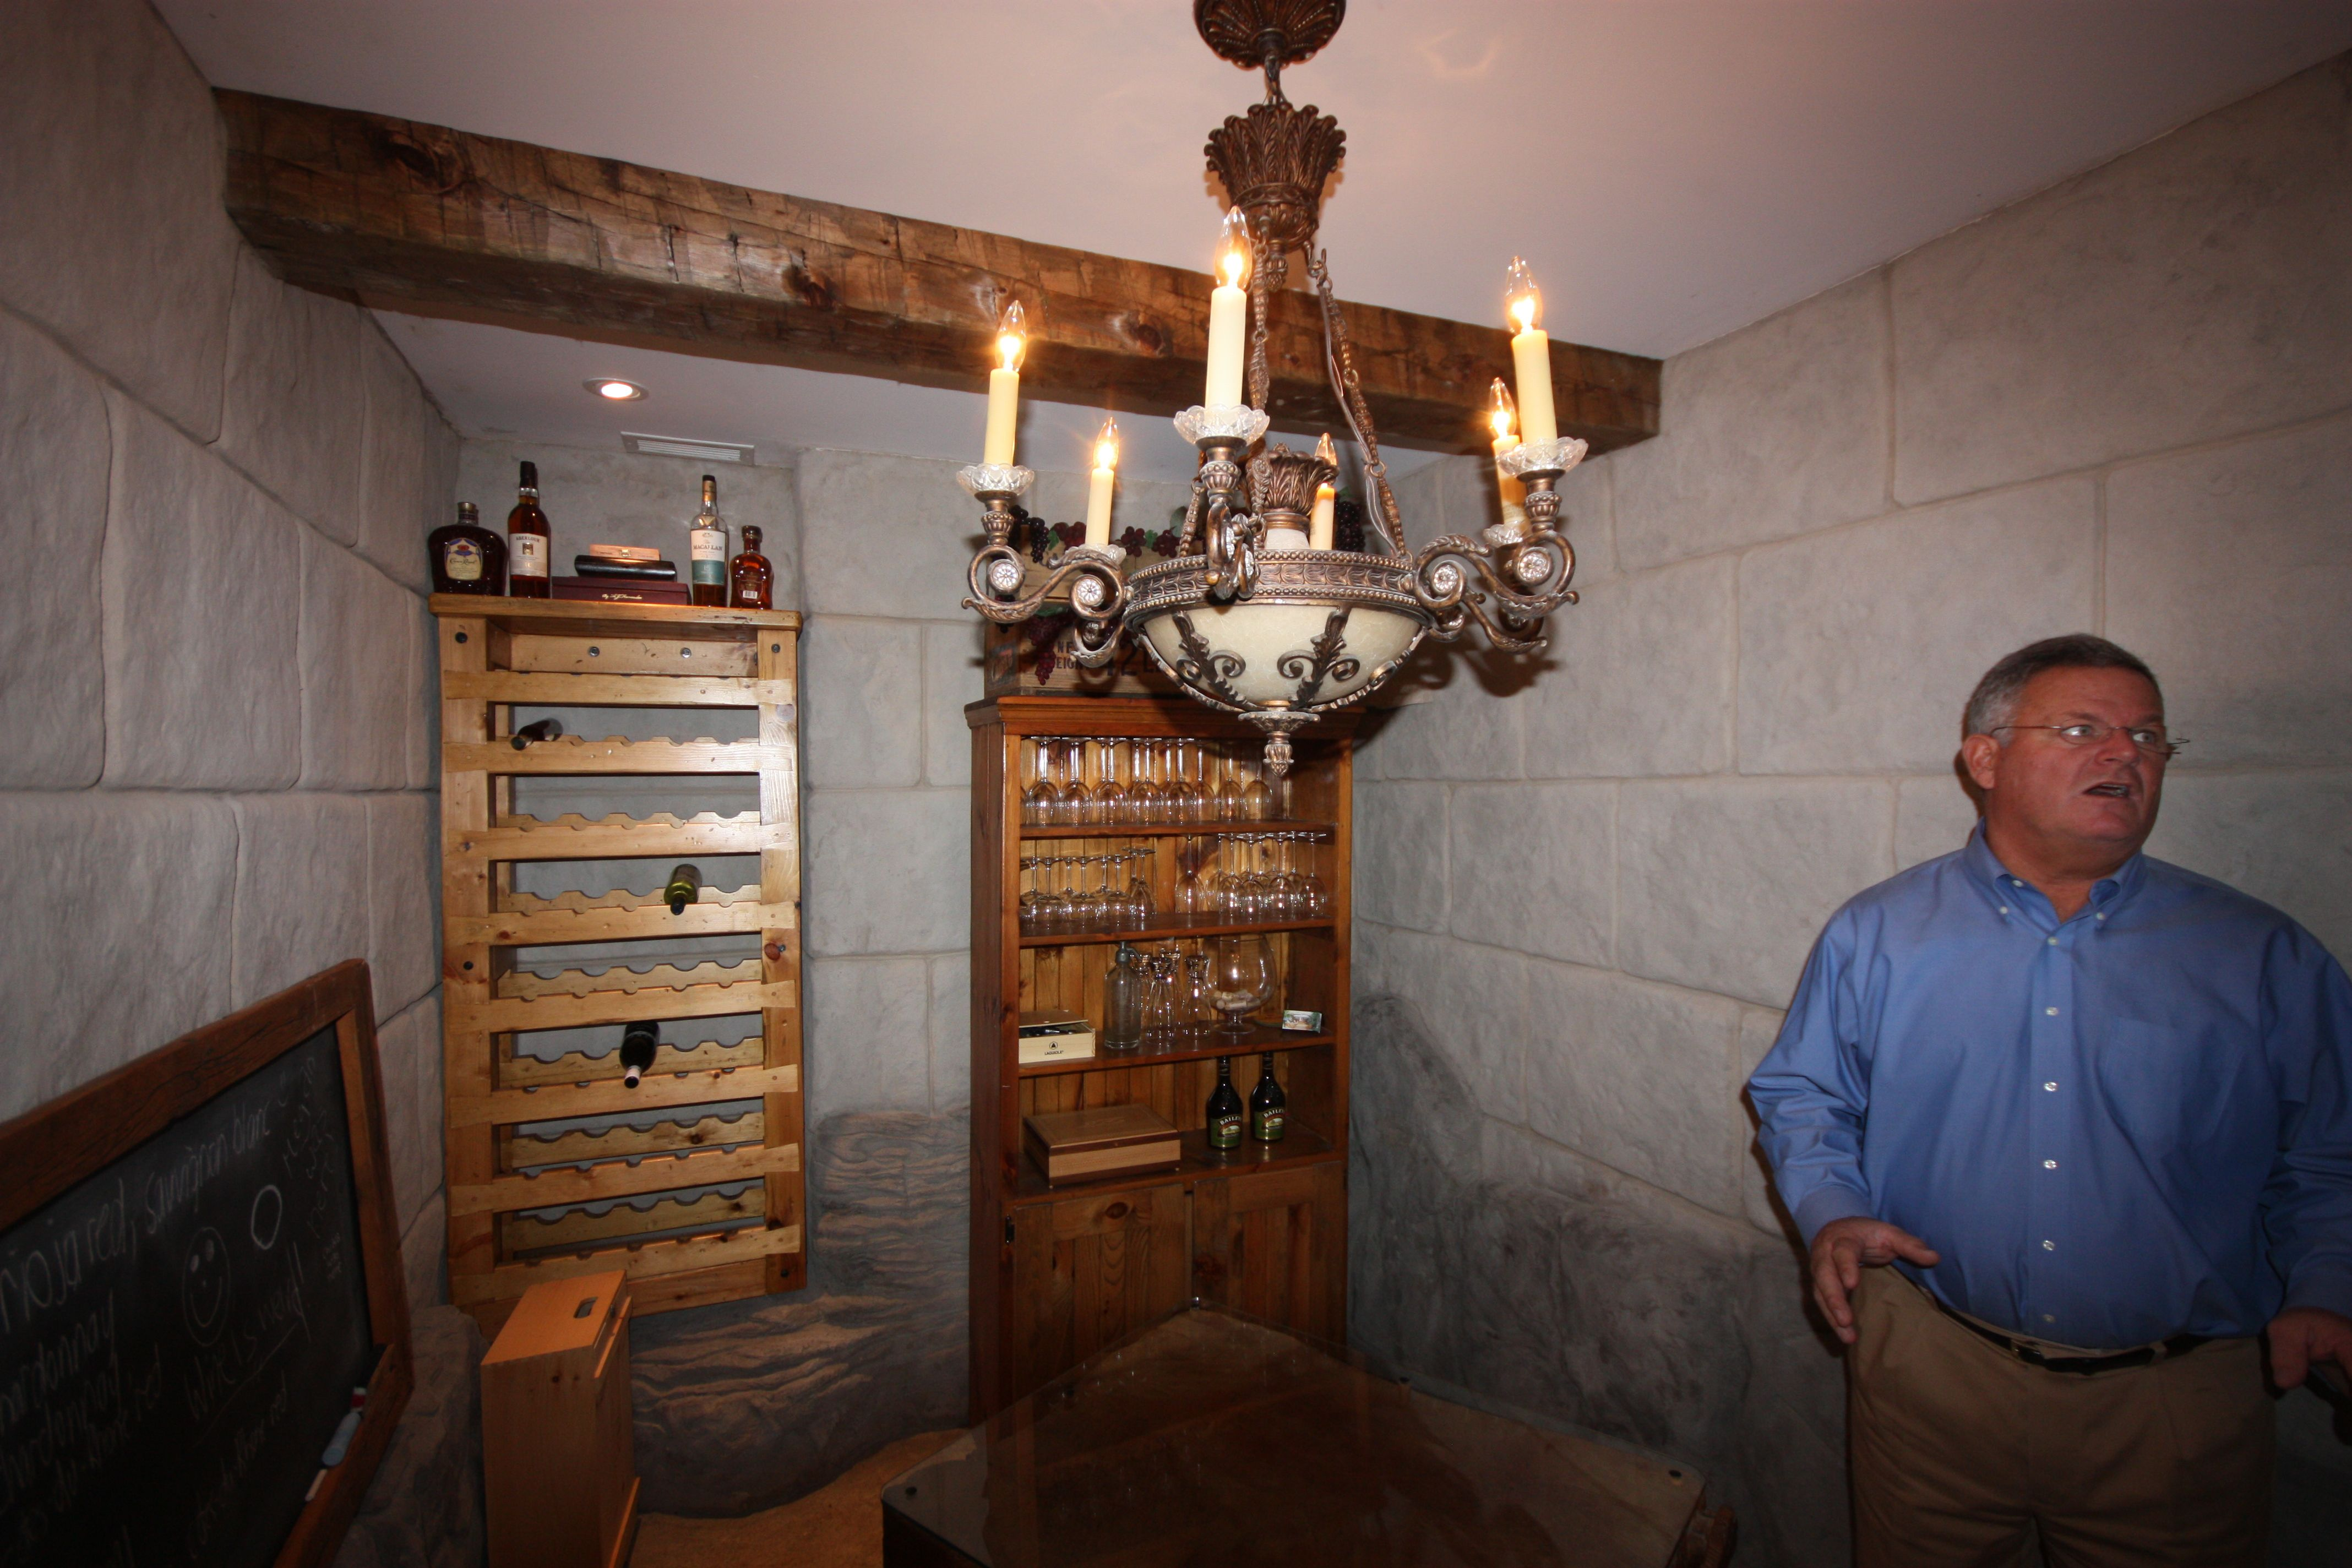 This is a very cool wine cellar we did using flexcment to look